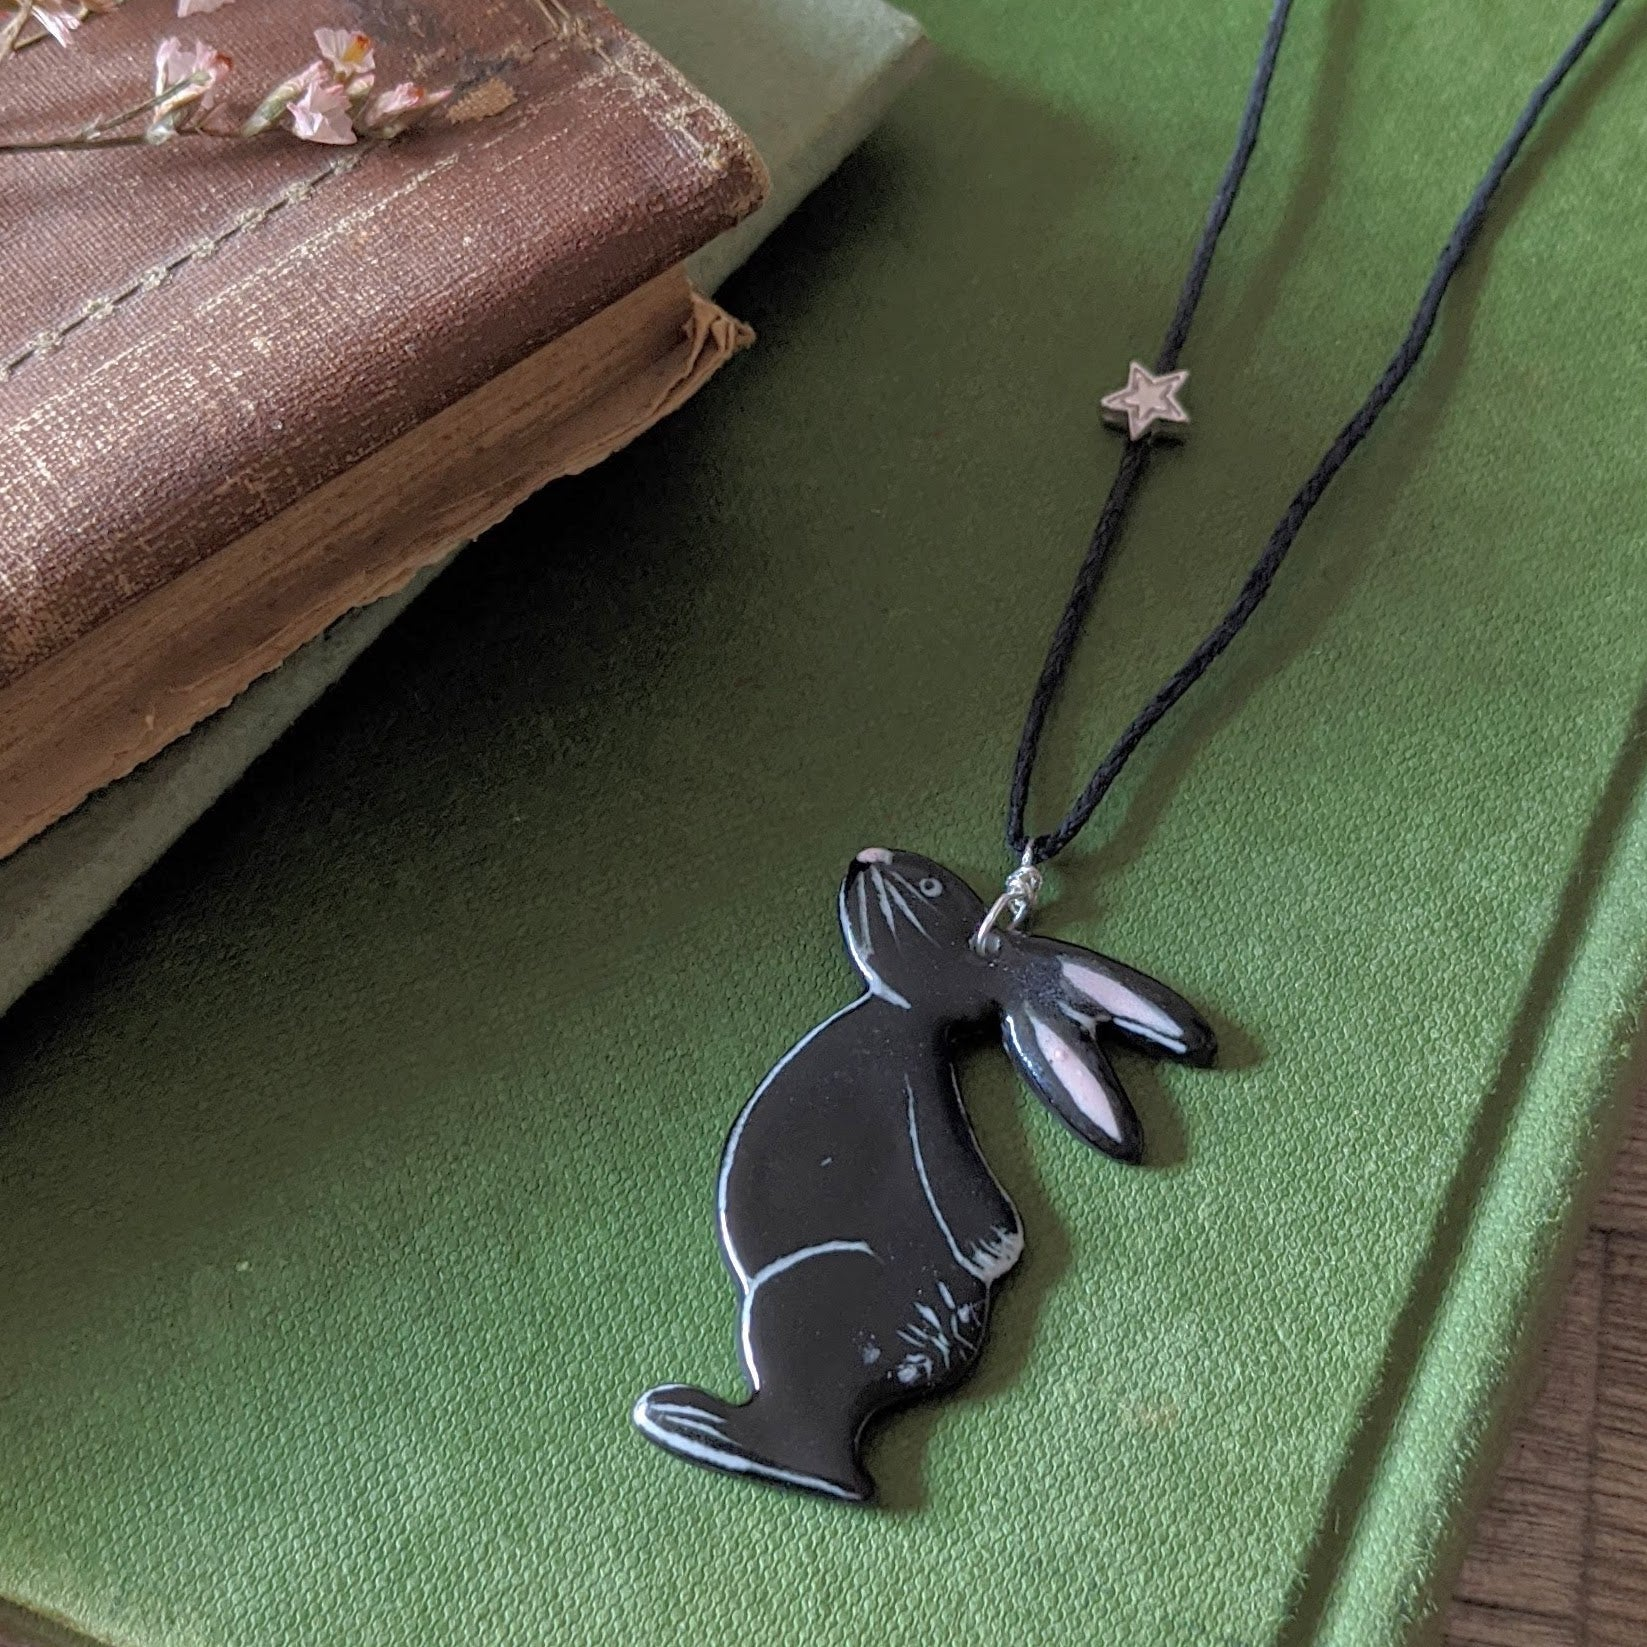 Bunny and Star Necklace - Black - Everything Bunny Rabbit